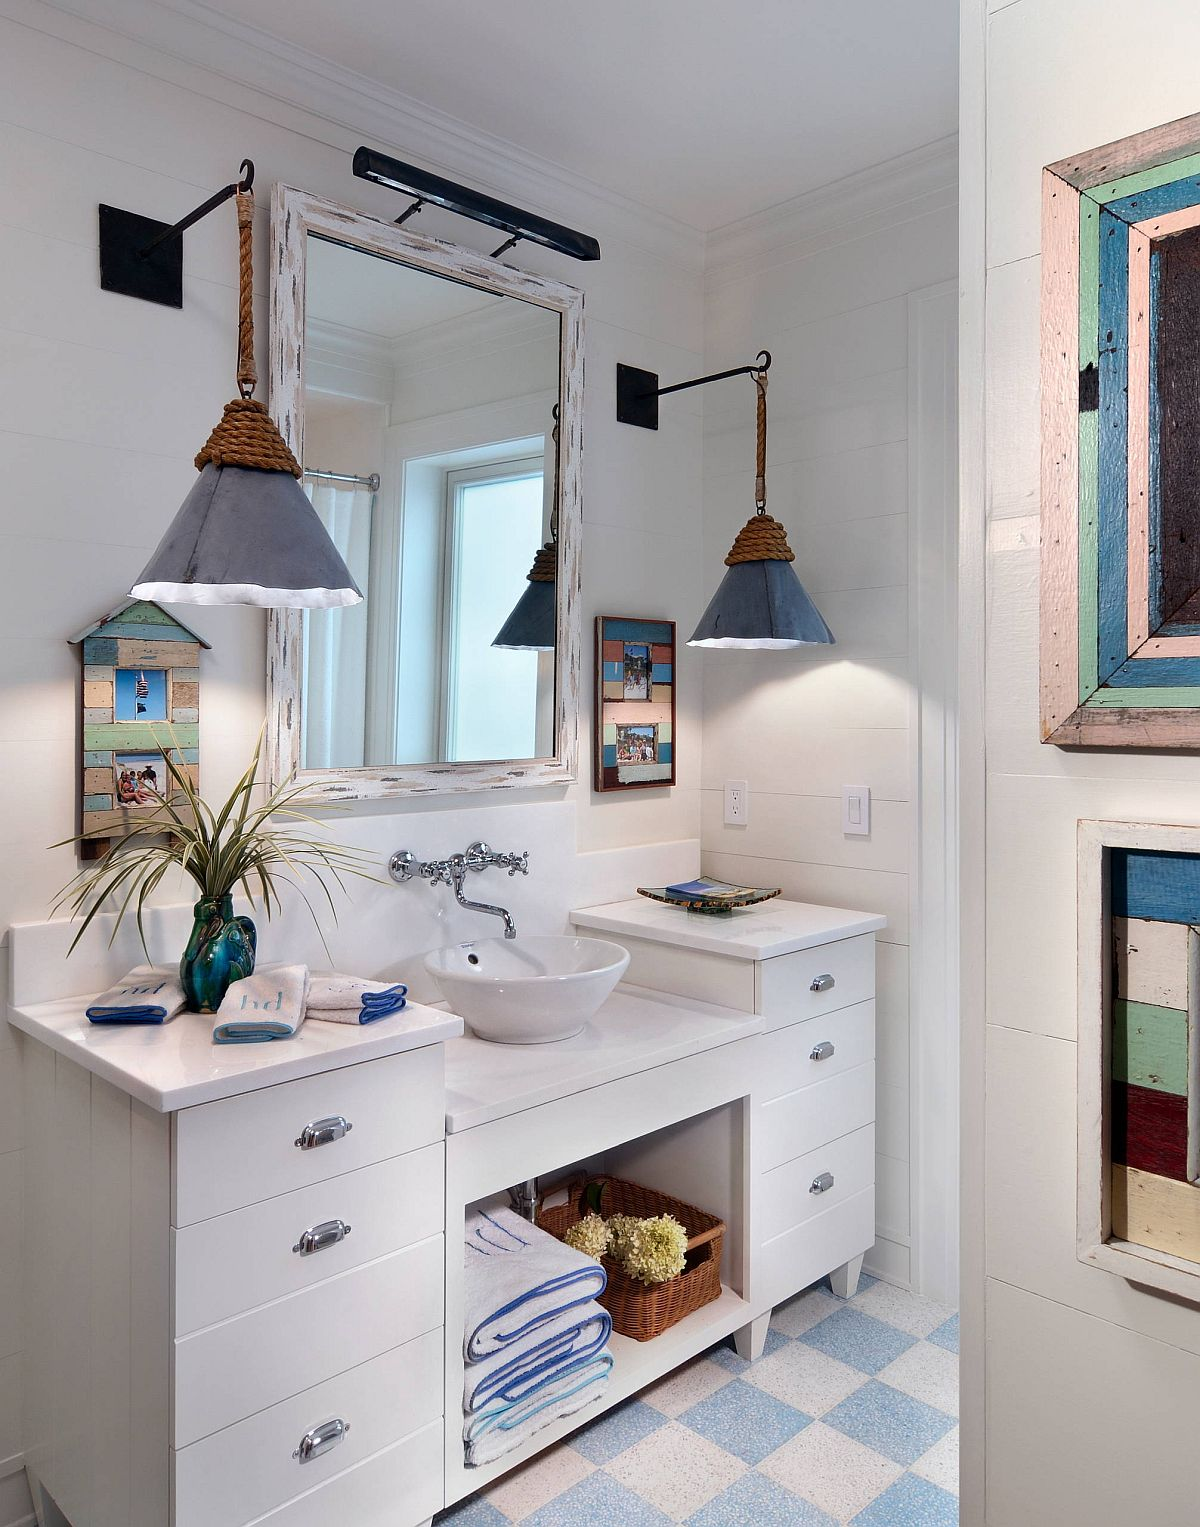 Cottage and beach styles rolled into one inside the small bathroom